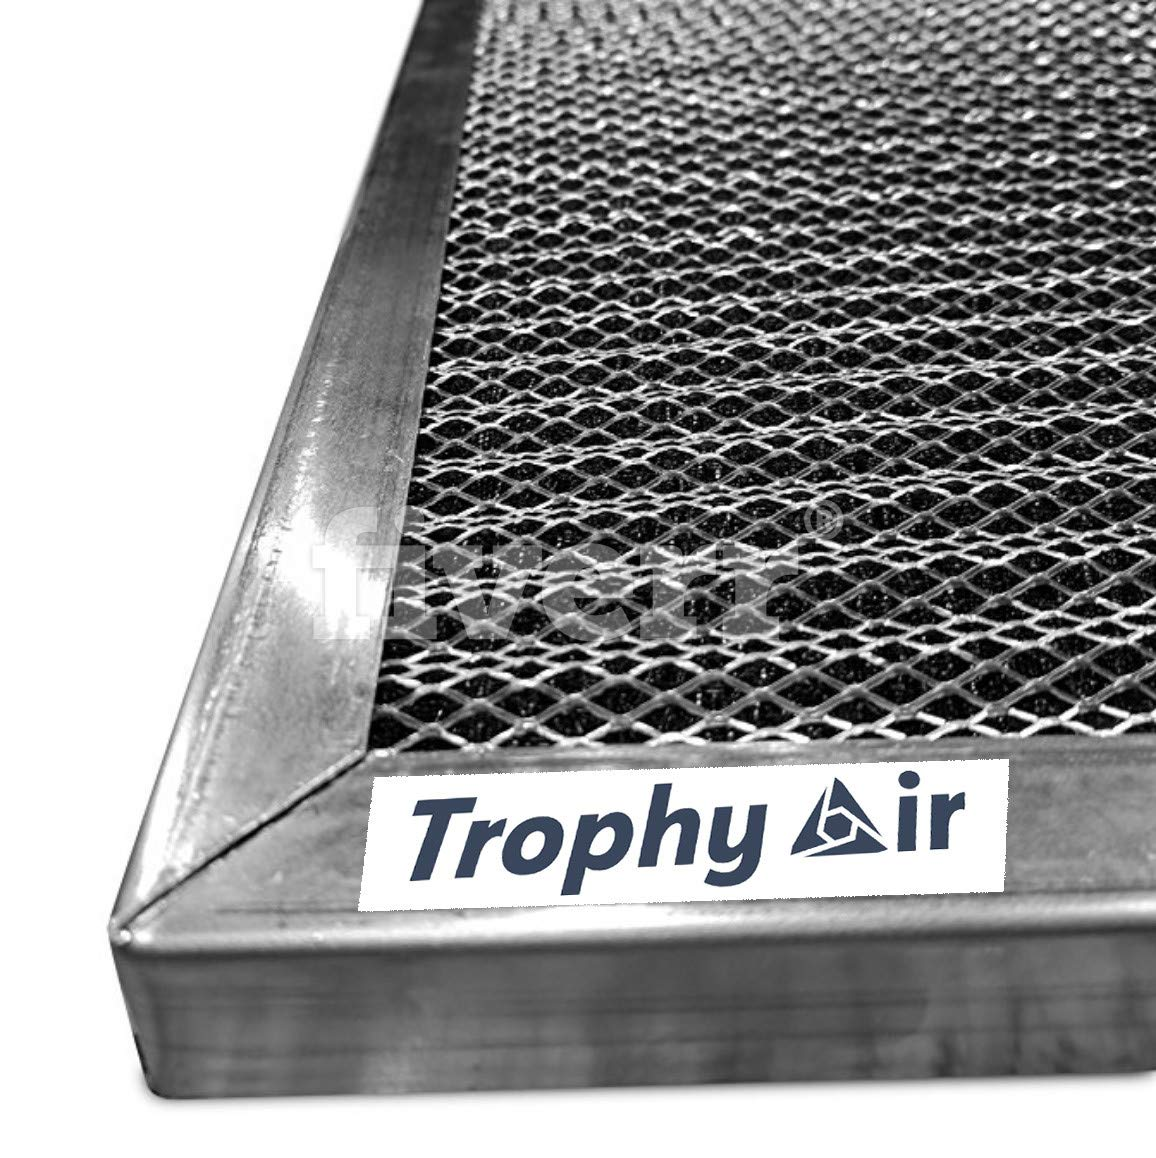 Trophy Air Electrostatic Air Filter Replacement   HVAC Conditioner Purifier   Purify Allergens for Cleaner, Healthier Home Environment   Easy to Install   Made in the USA (18x24x1)